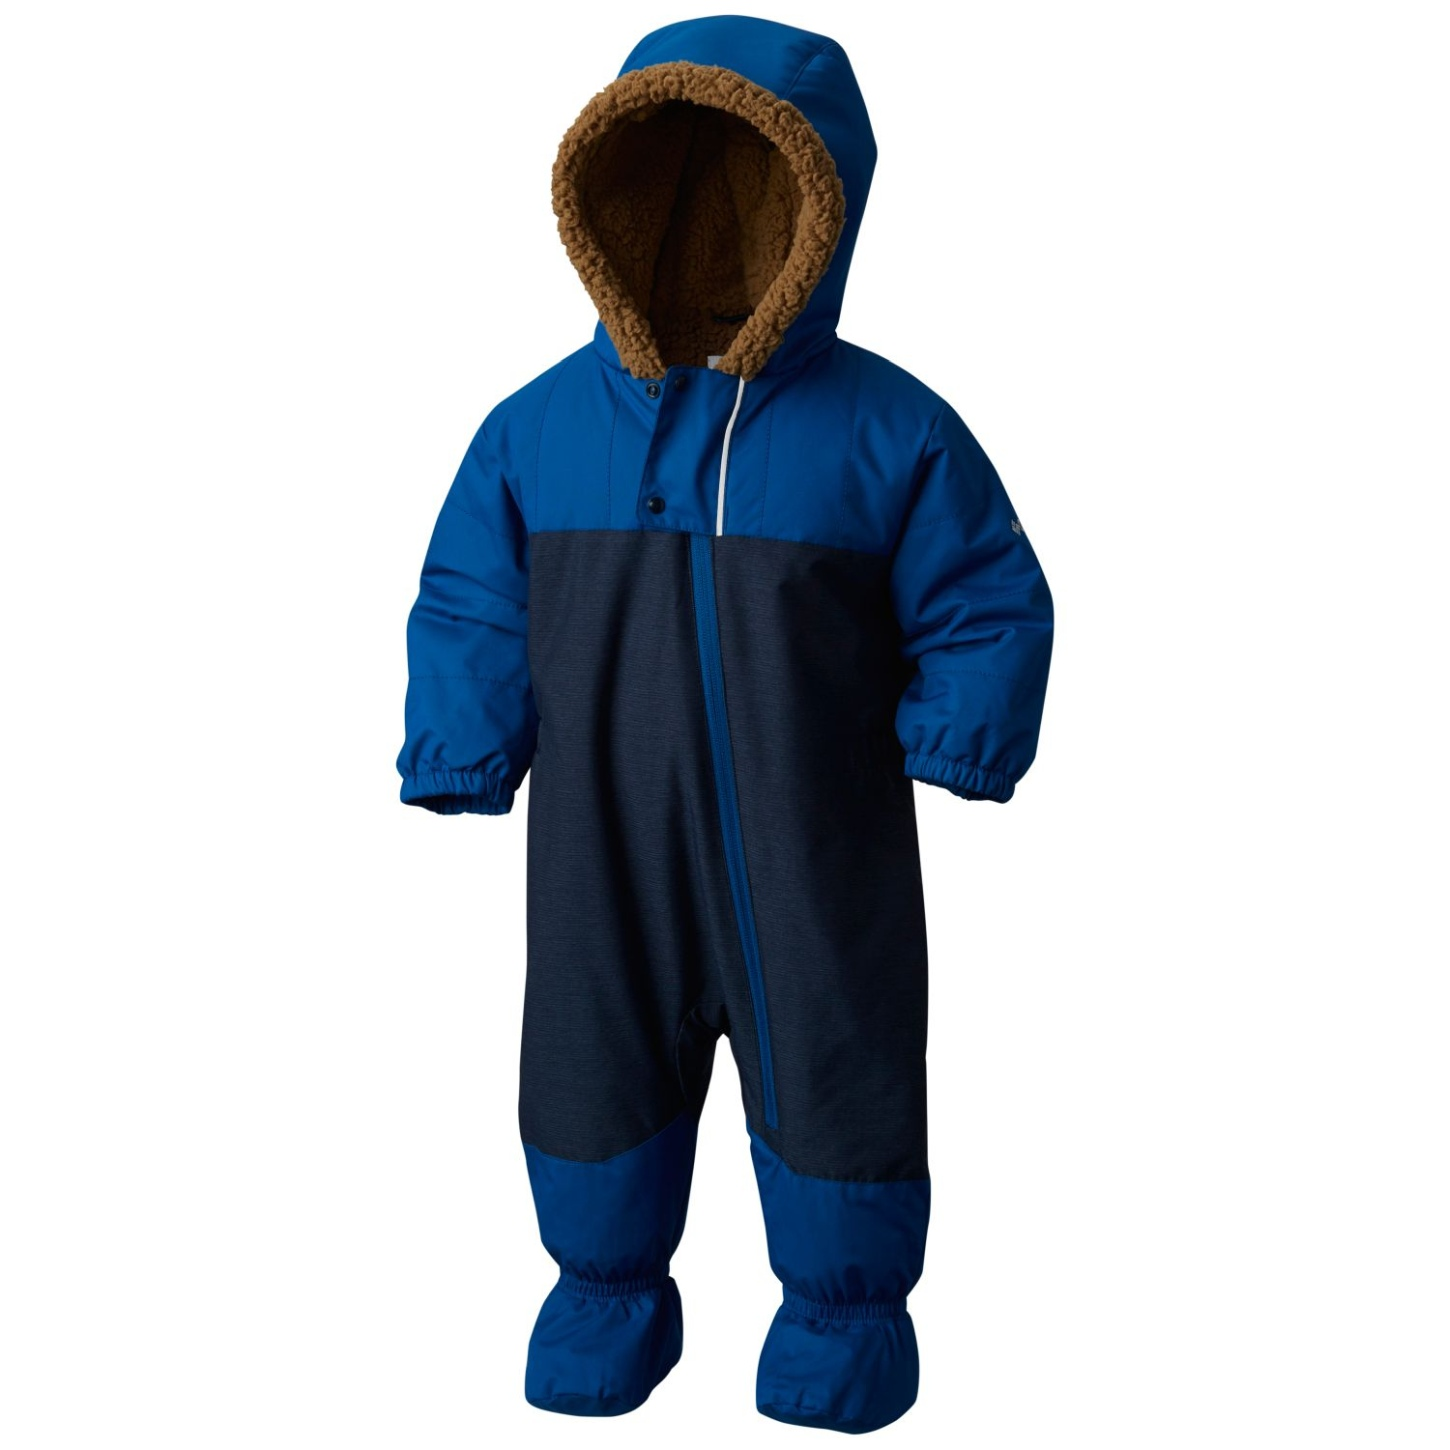 Columbia Boys' Cute Factor Snowsuit Marine Blue-30